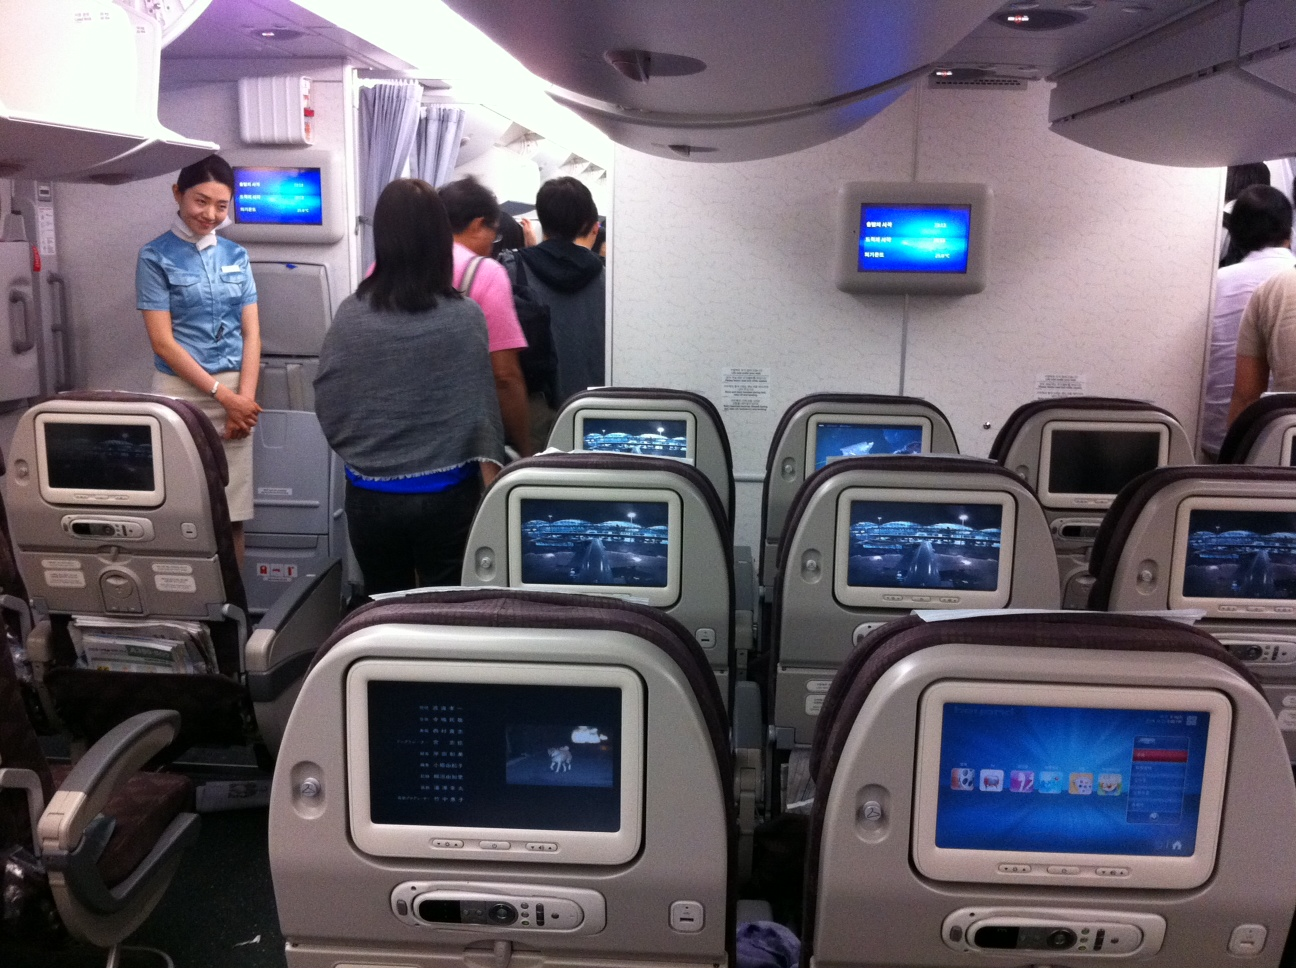 File Sk Korea Air Airbus A380 Cabin Interior Economy Class 2 Jpg